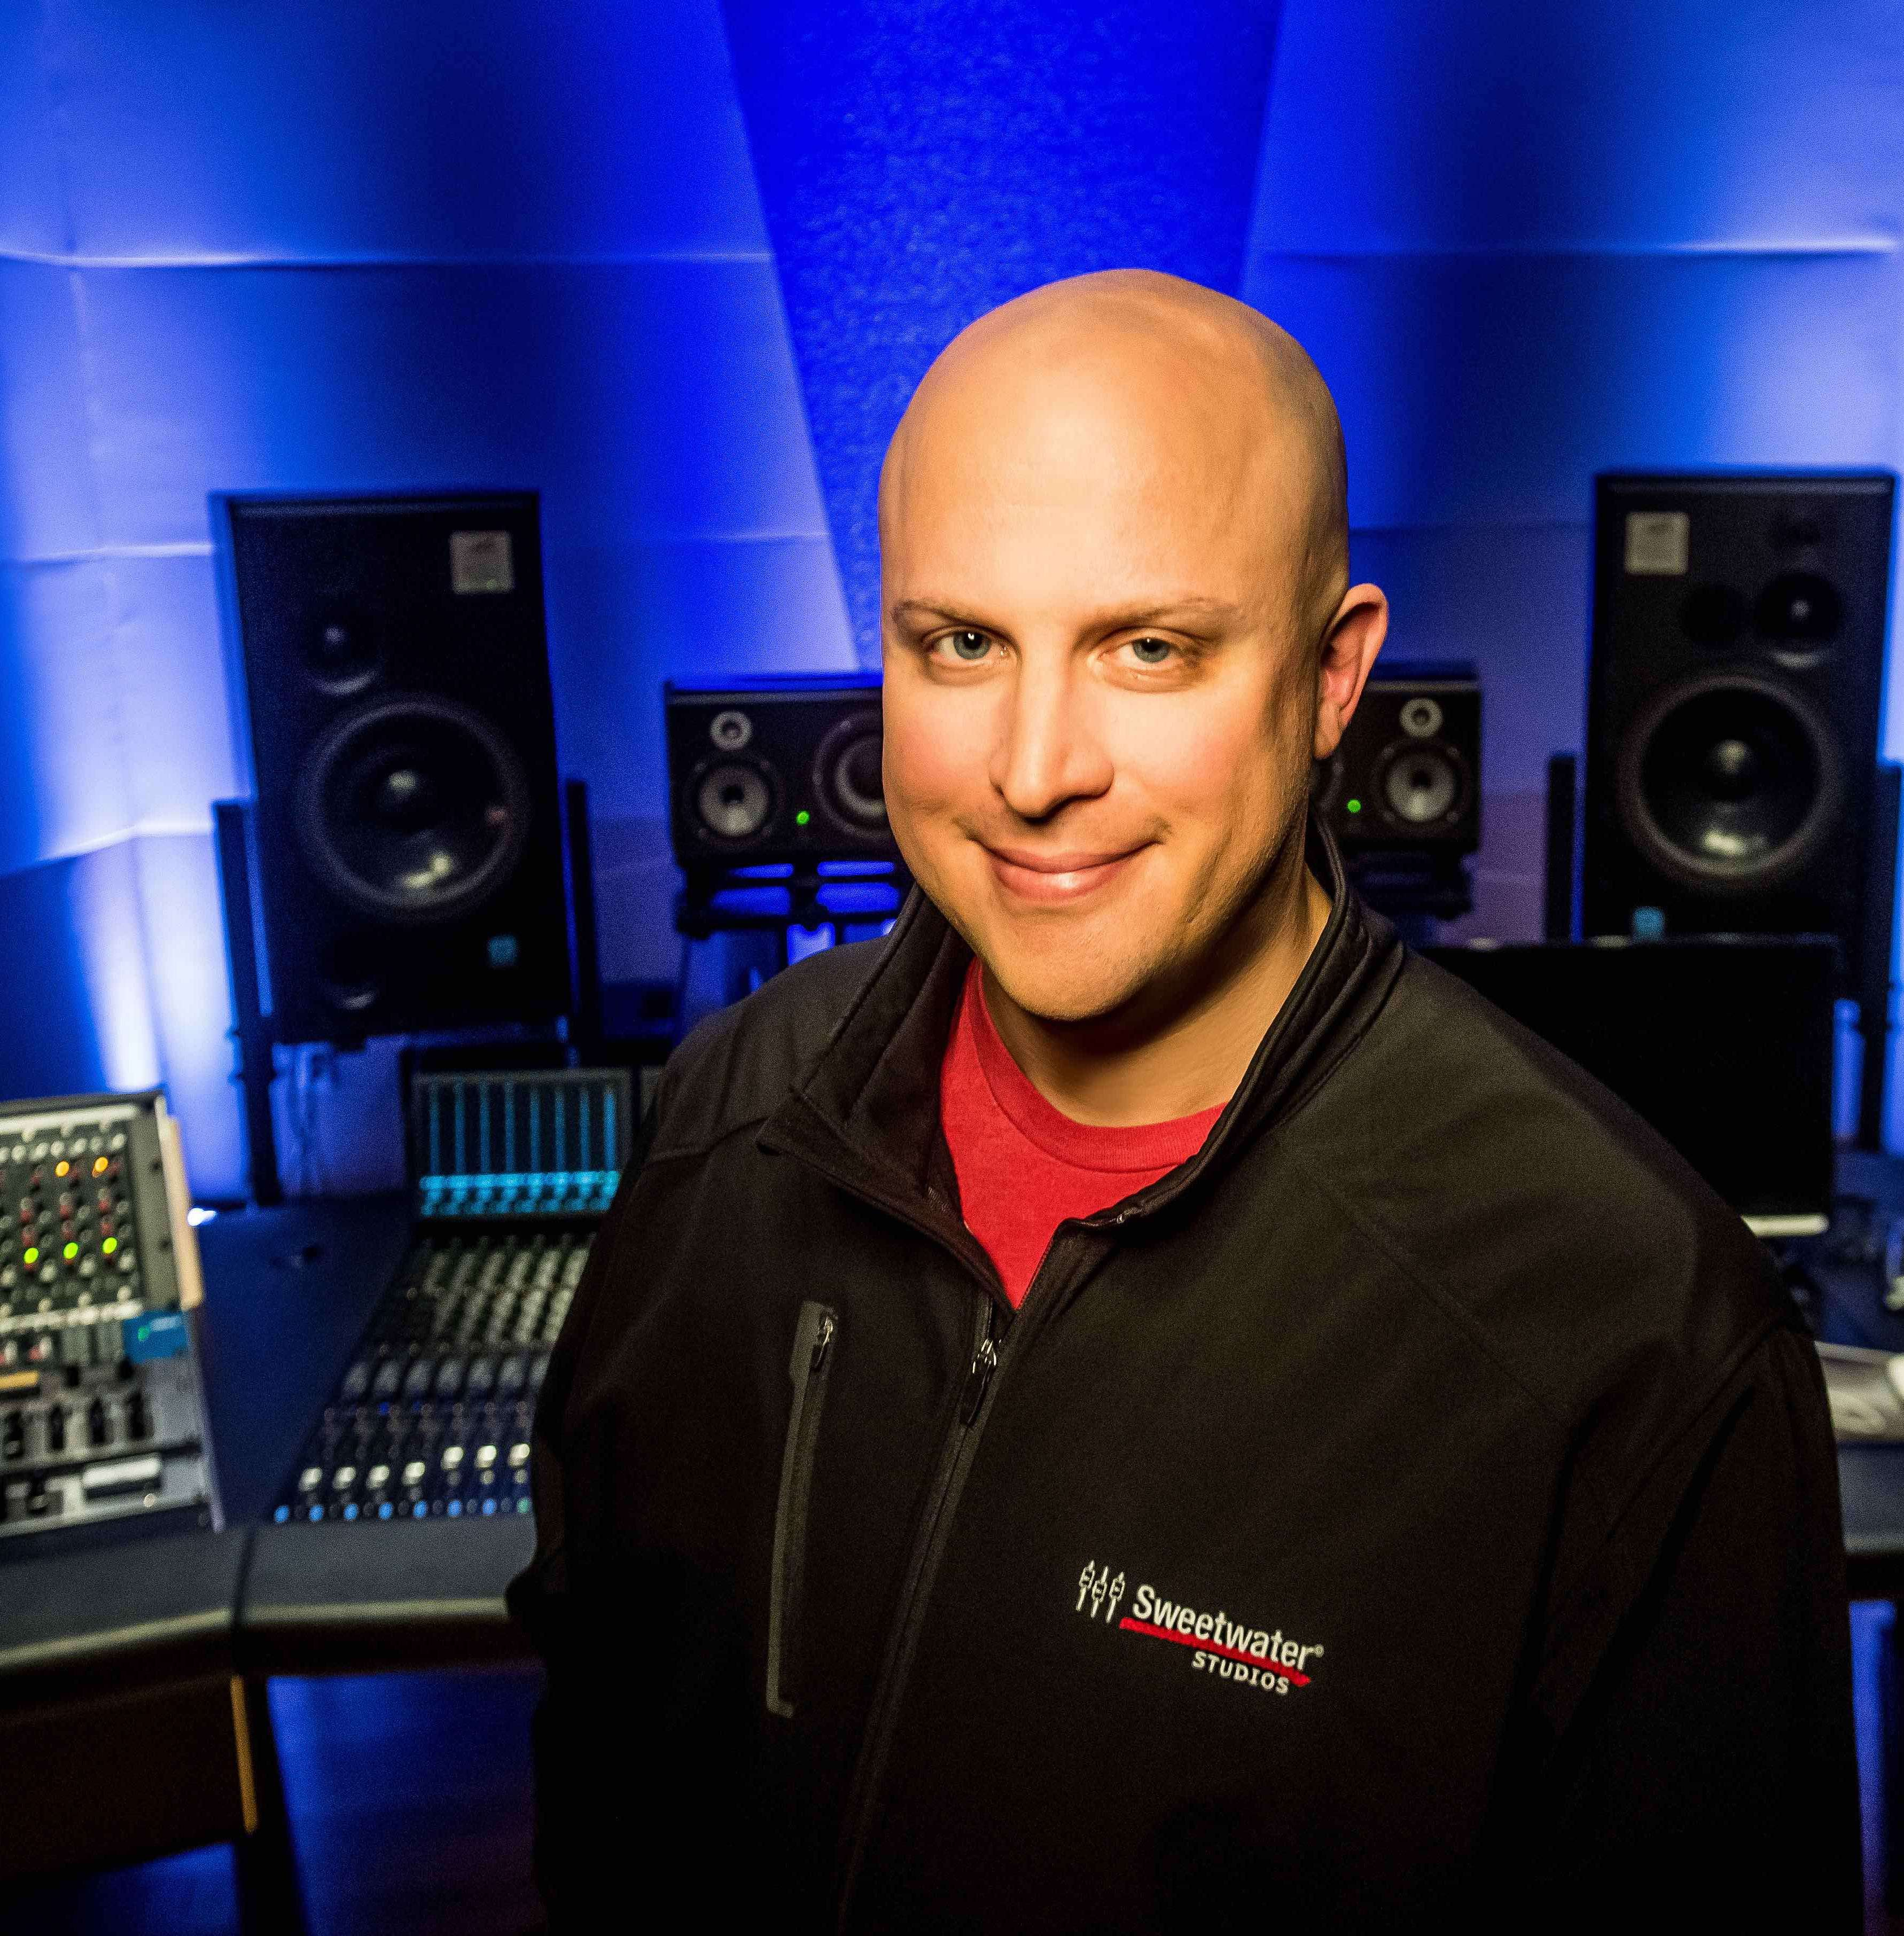 Sweetwater Studios Senior Producer/Engineer and VP of Music Production, Mark Hornsby